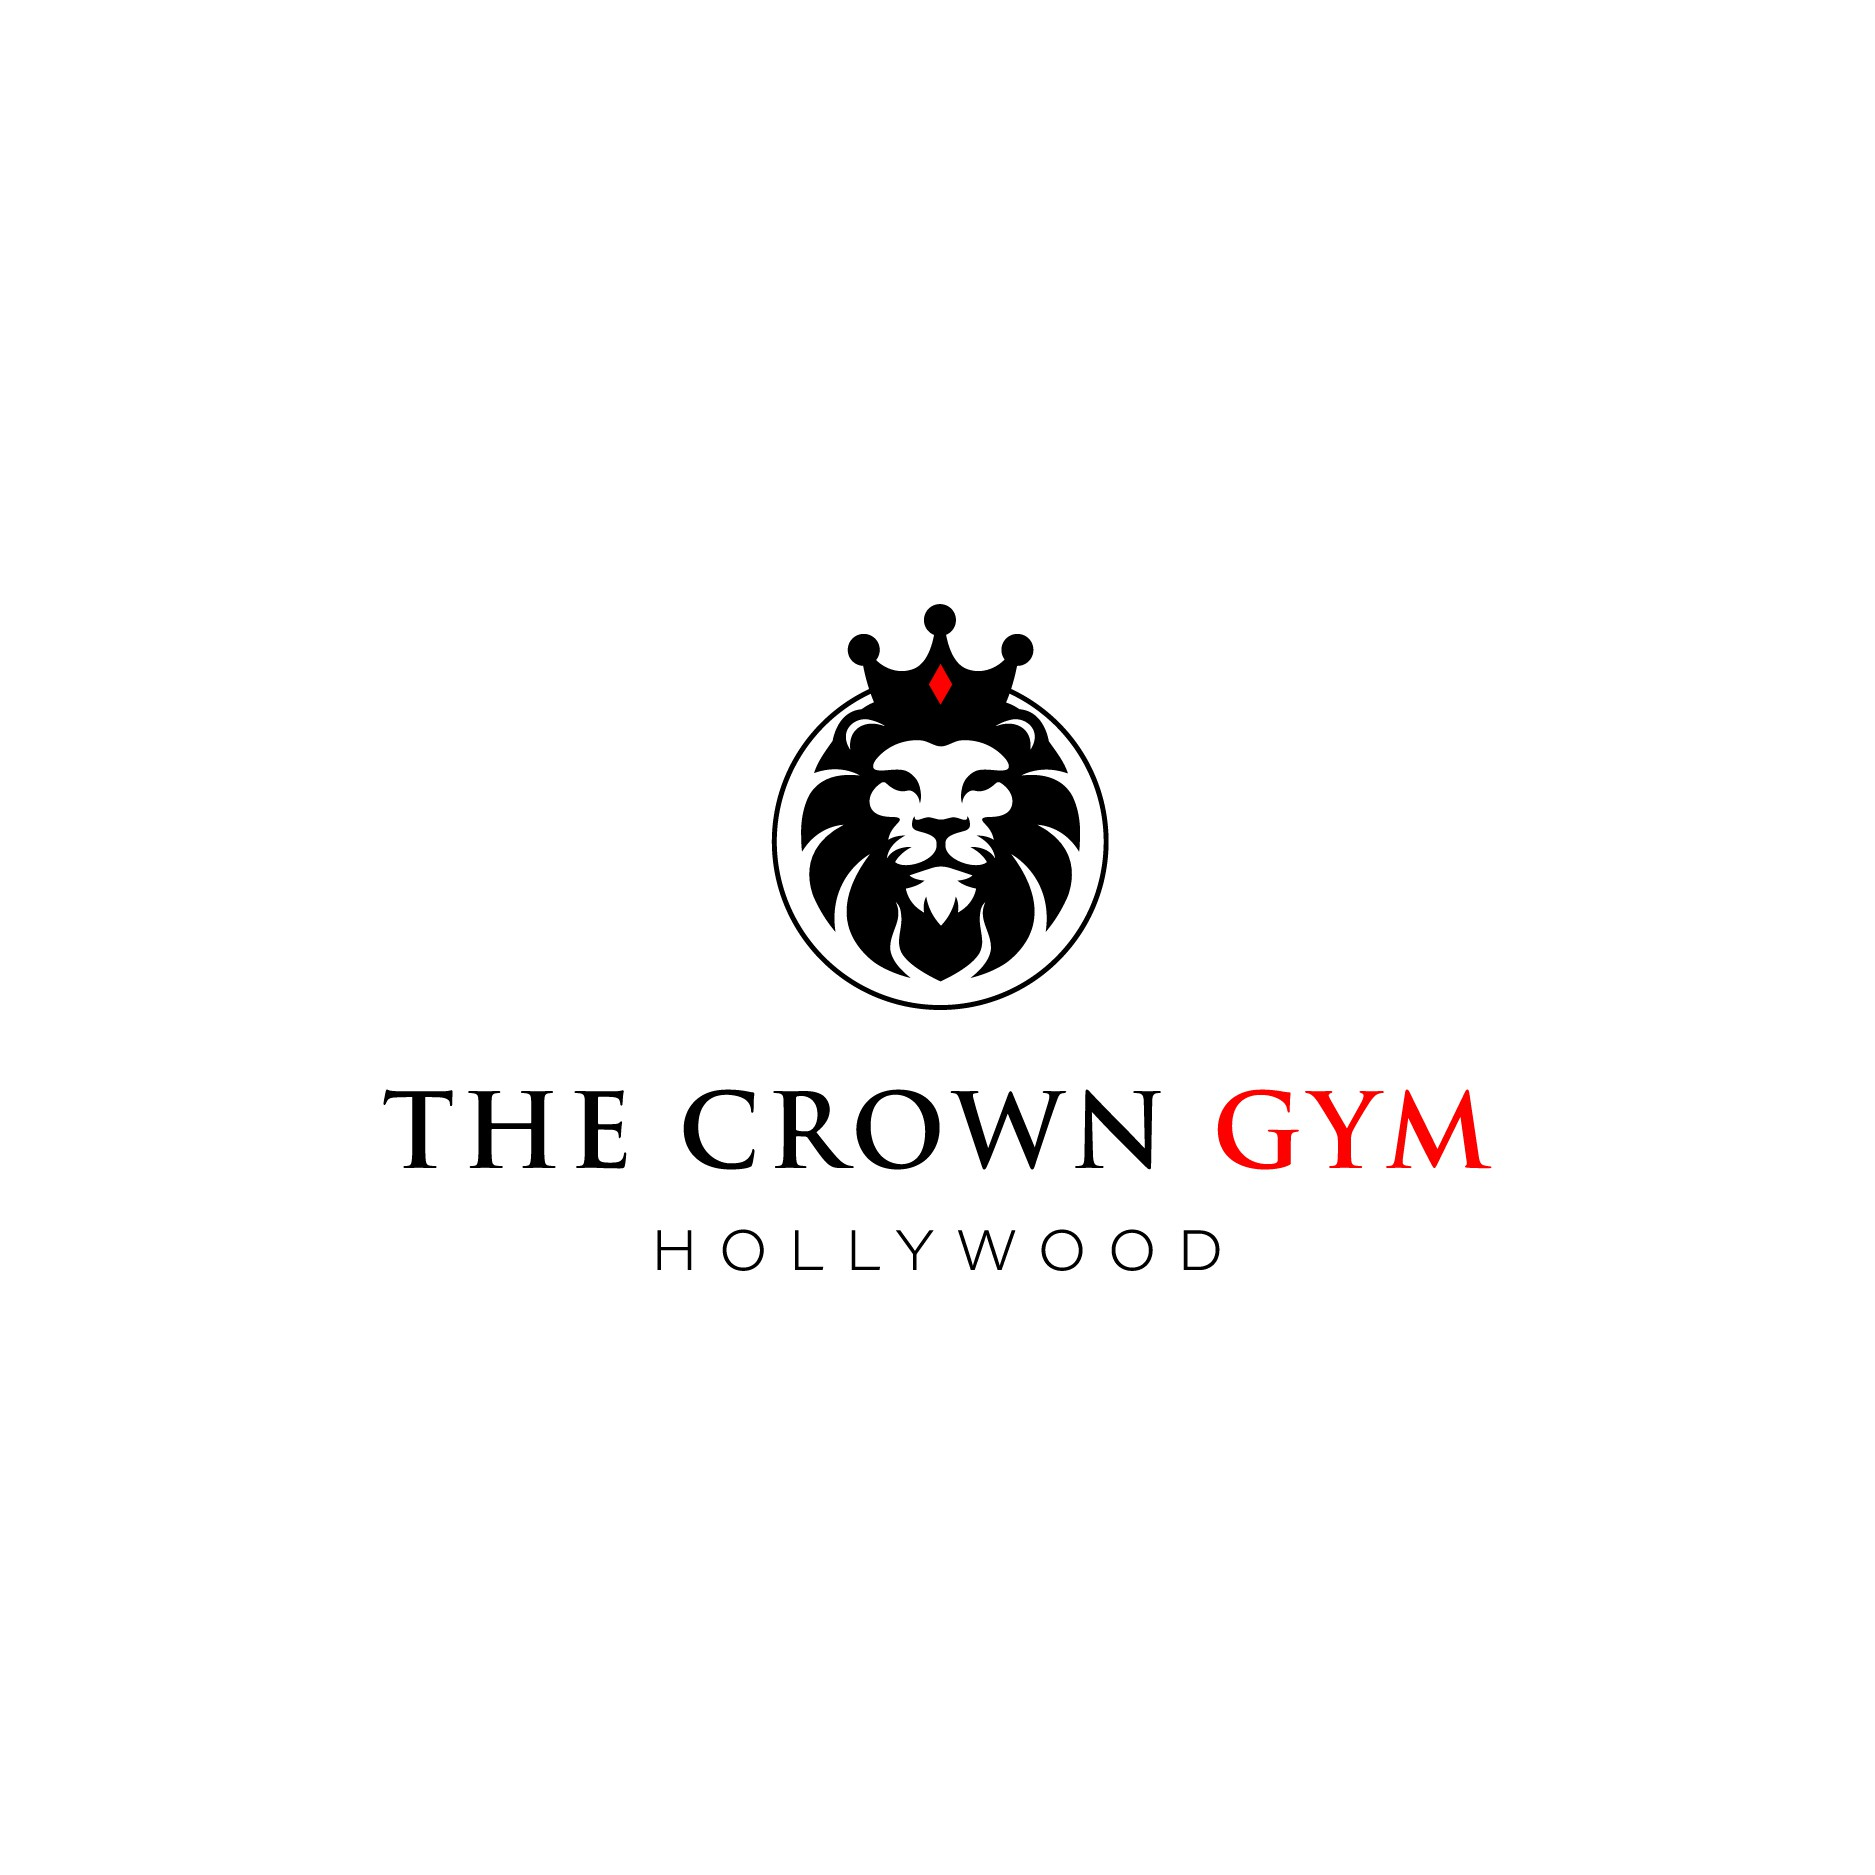 Private gym logo fit for a King